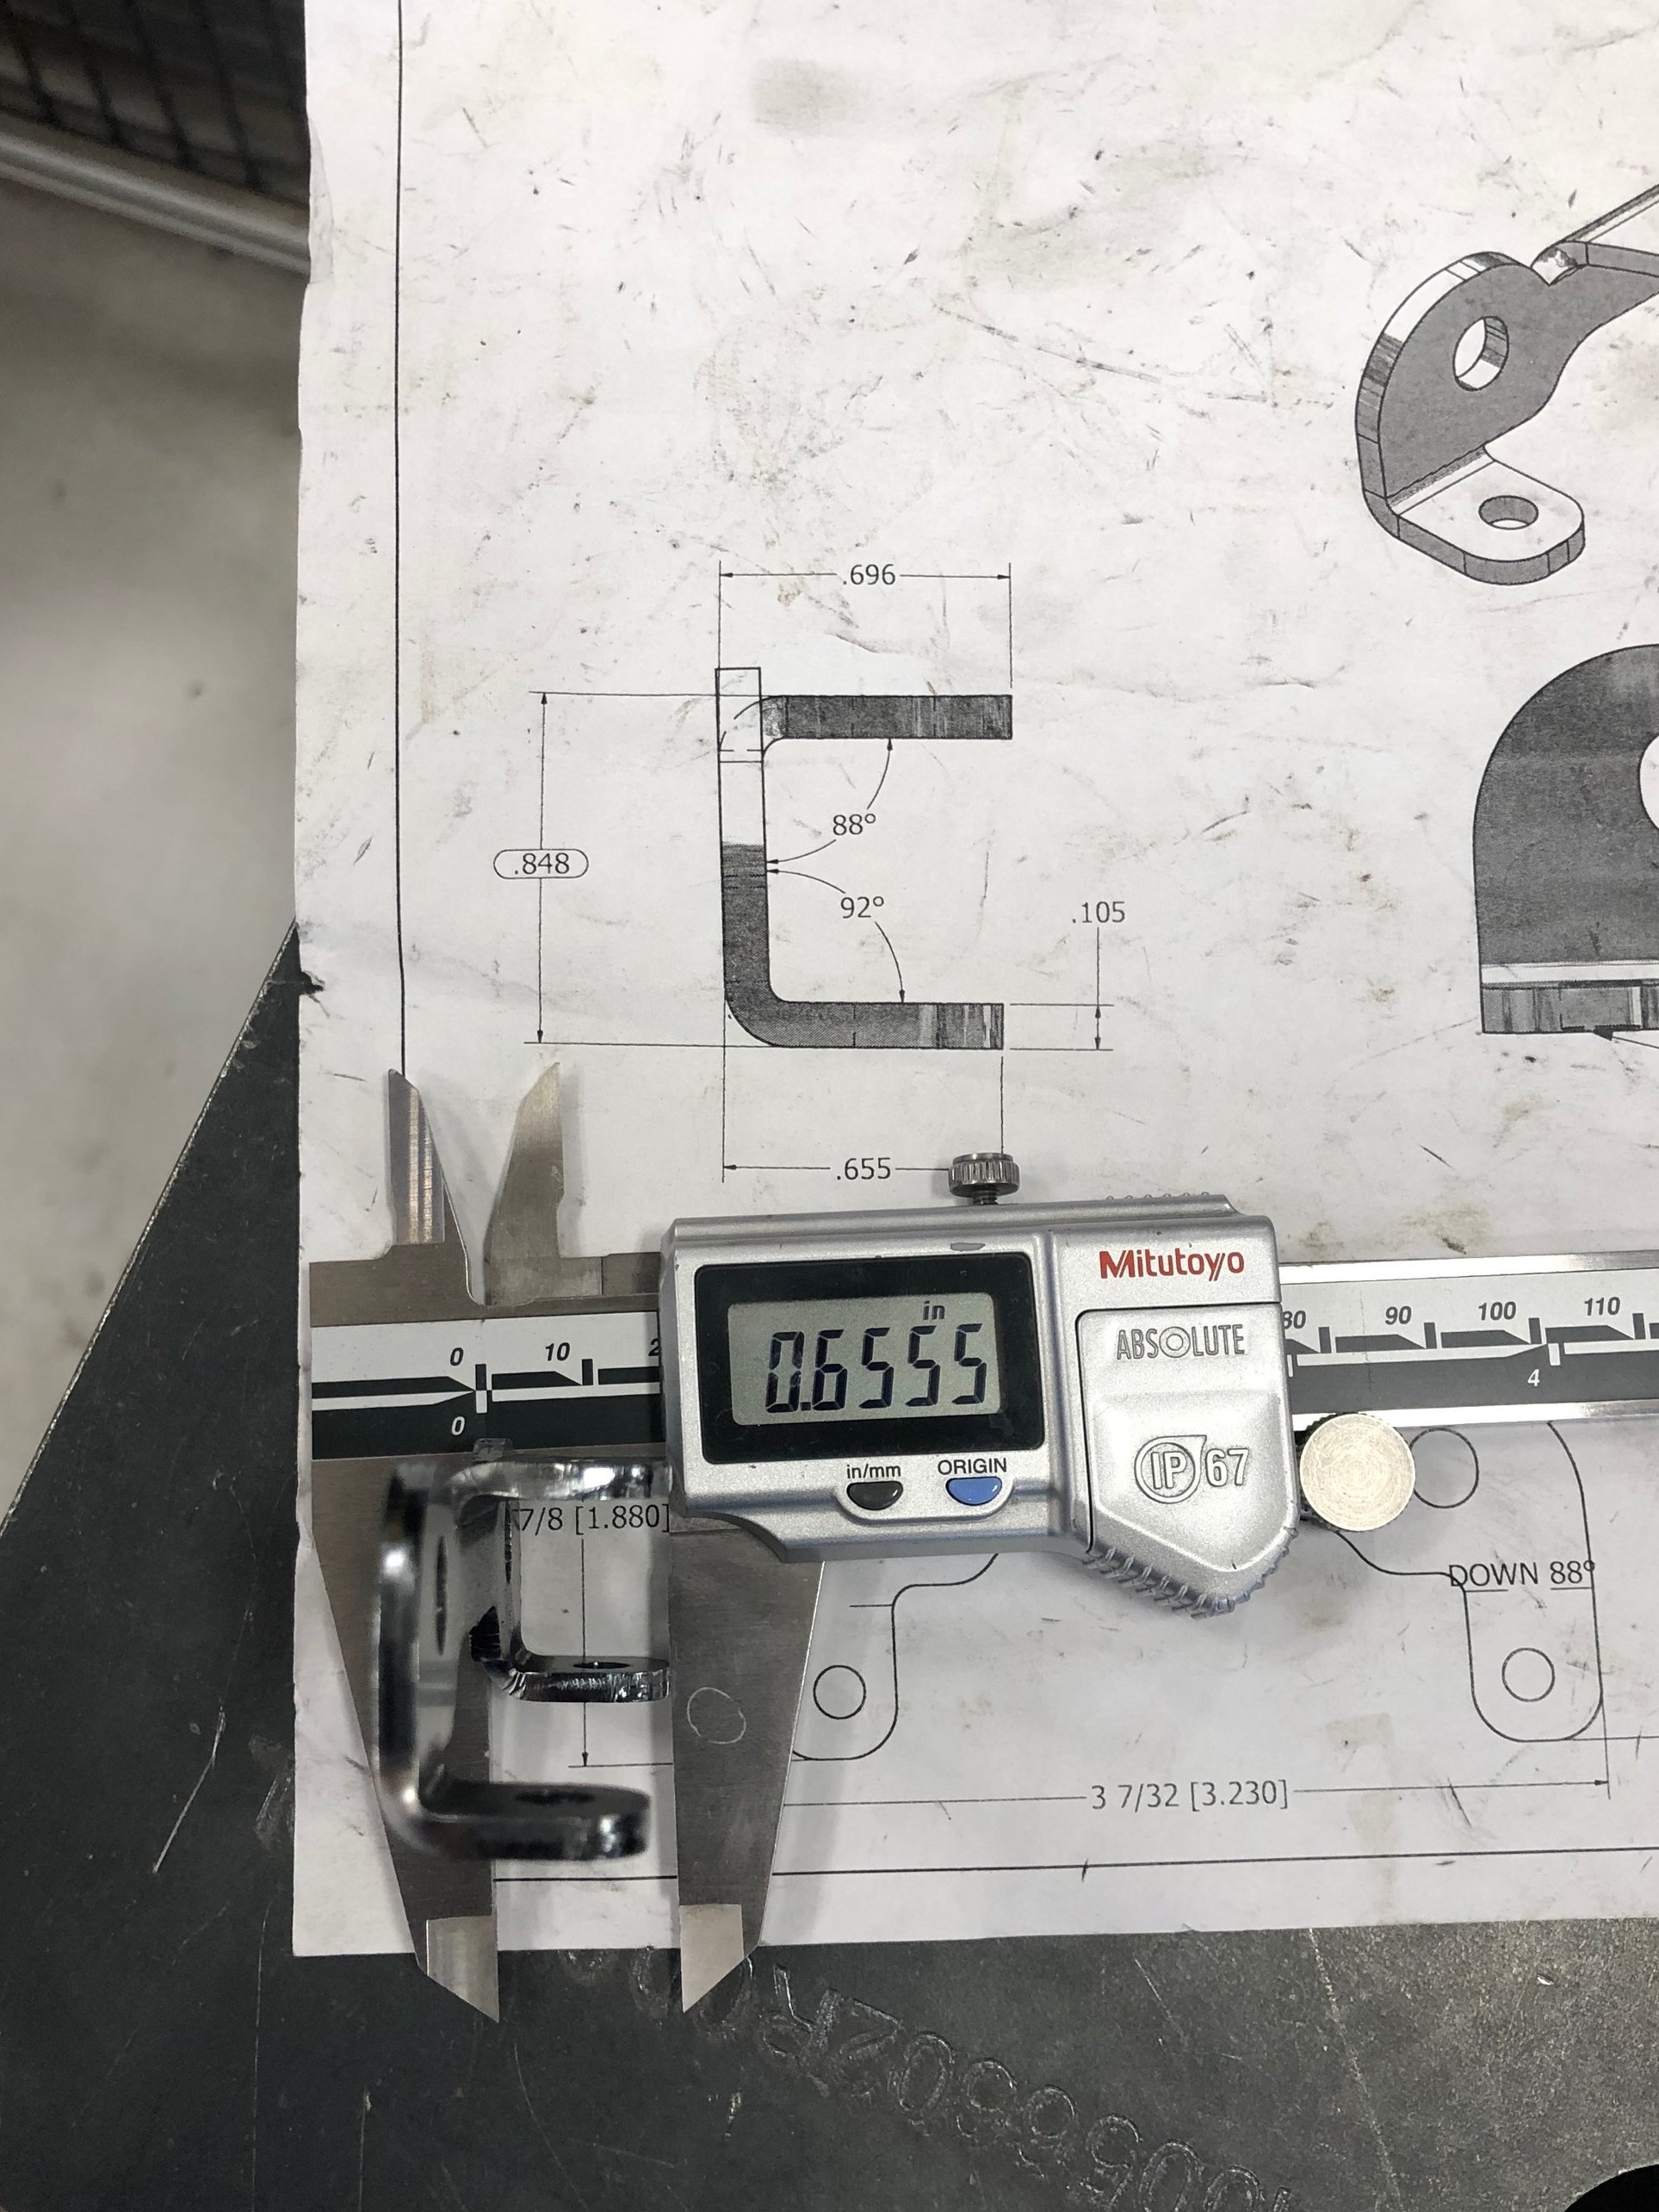 "the drawing says 0.655"" and it measures 0.6555""!! This may be a really good part for the picture but we haven't seen a variance of more than 0.005 and less that 0.25 degrees between parts. On a side note, this is why we don't use any paper drawings in the shop any more :)"